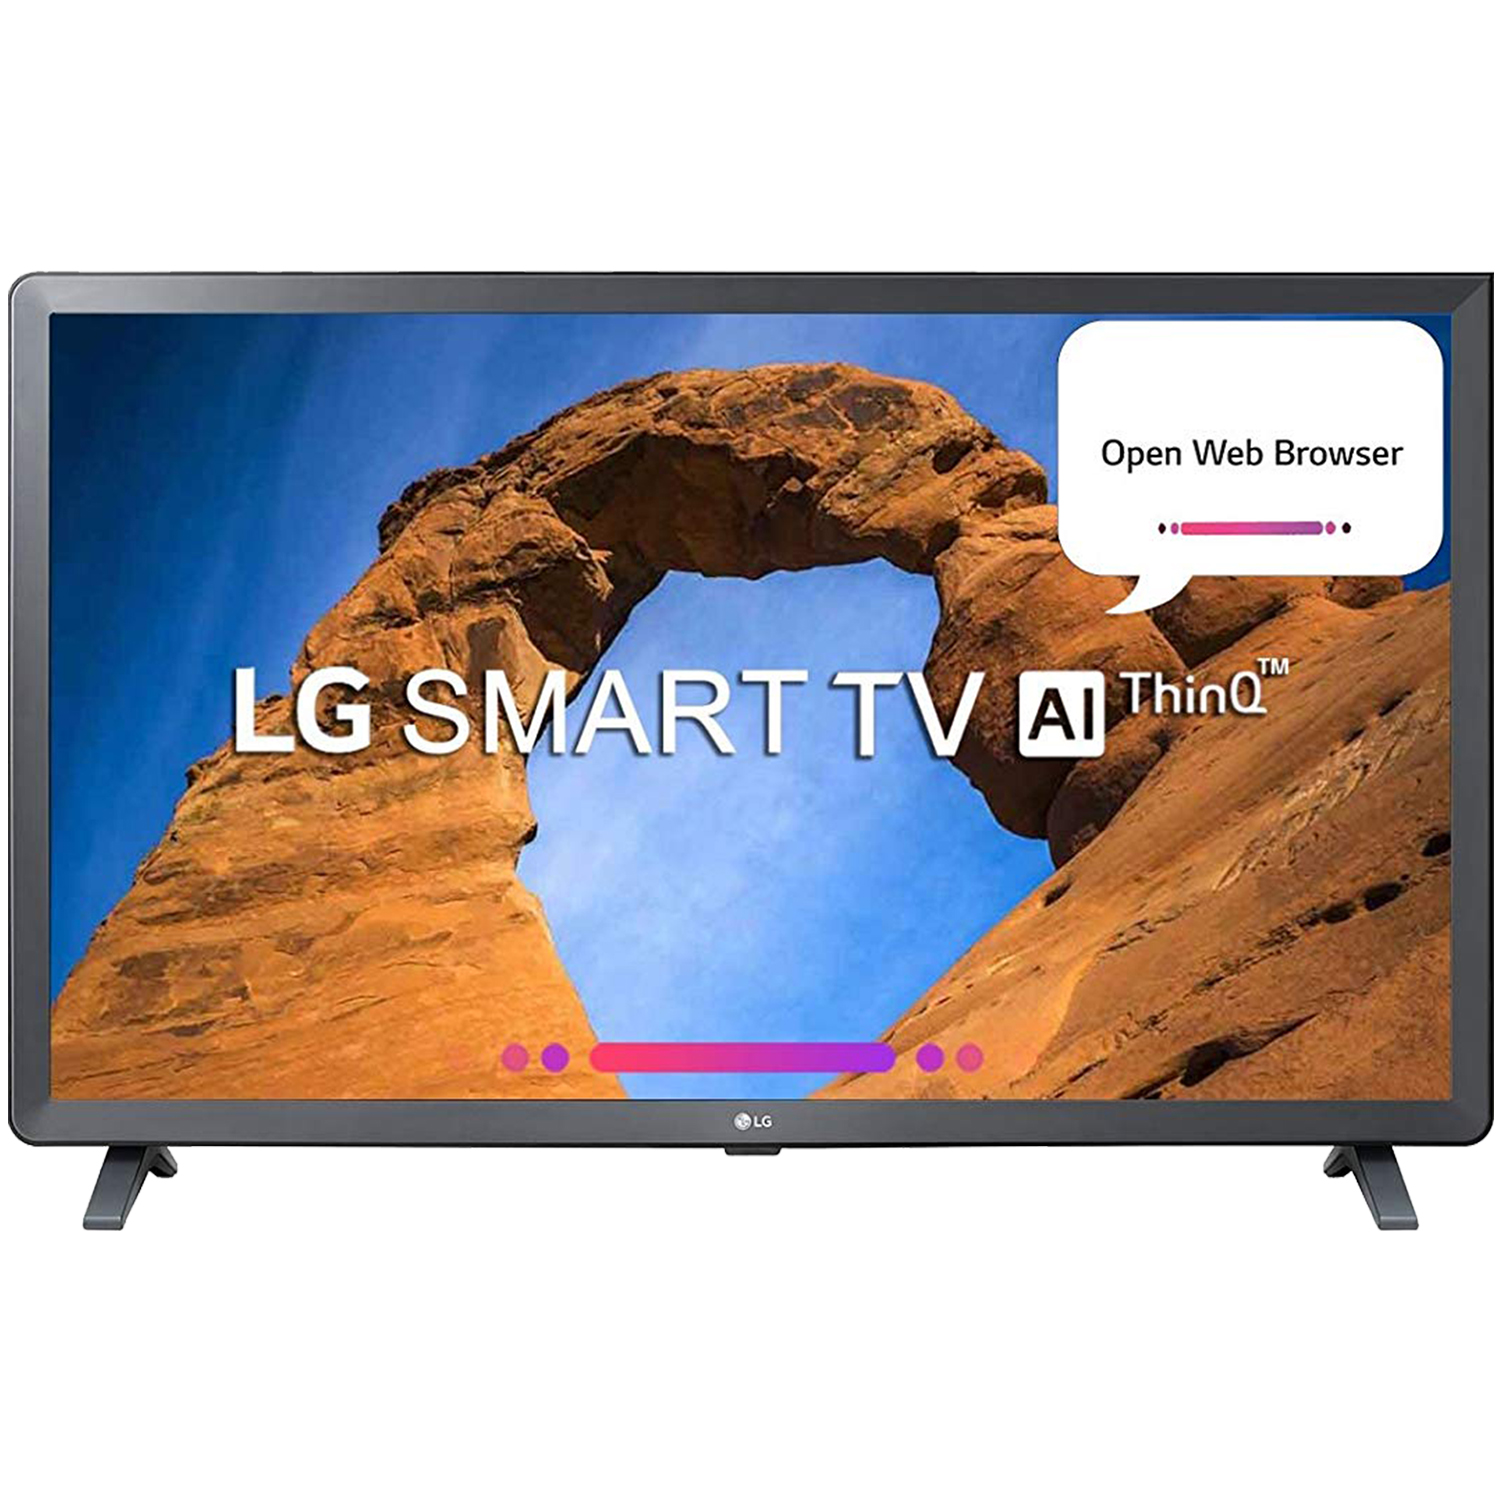 Madison : How to use the web browser on lg smart tv